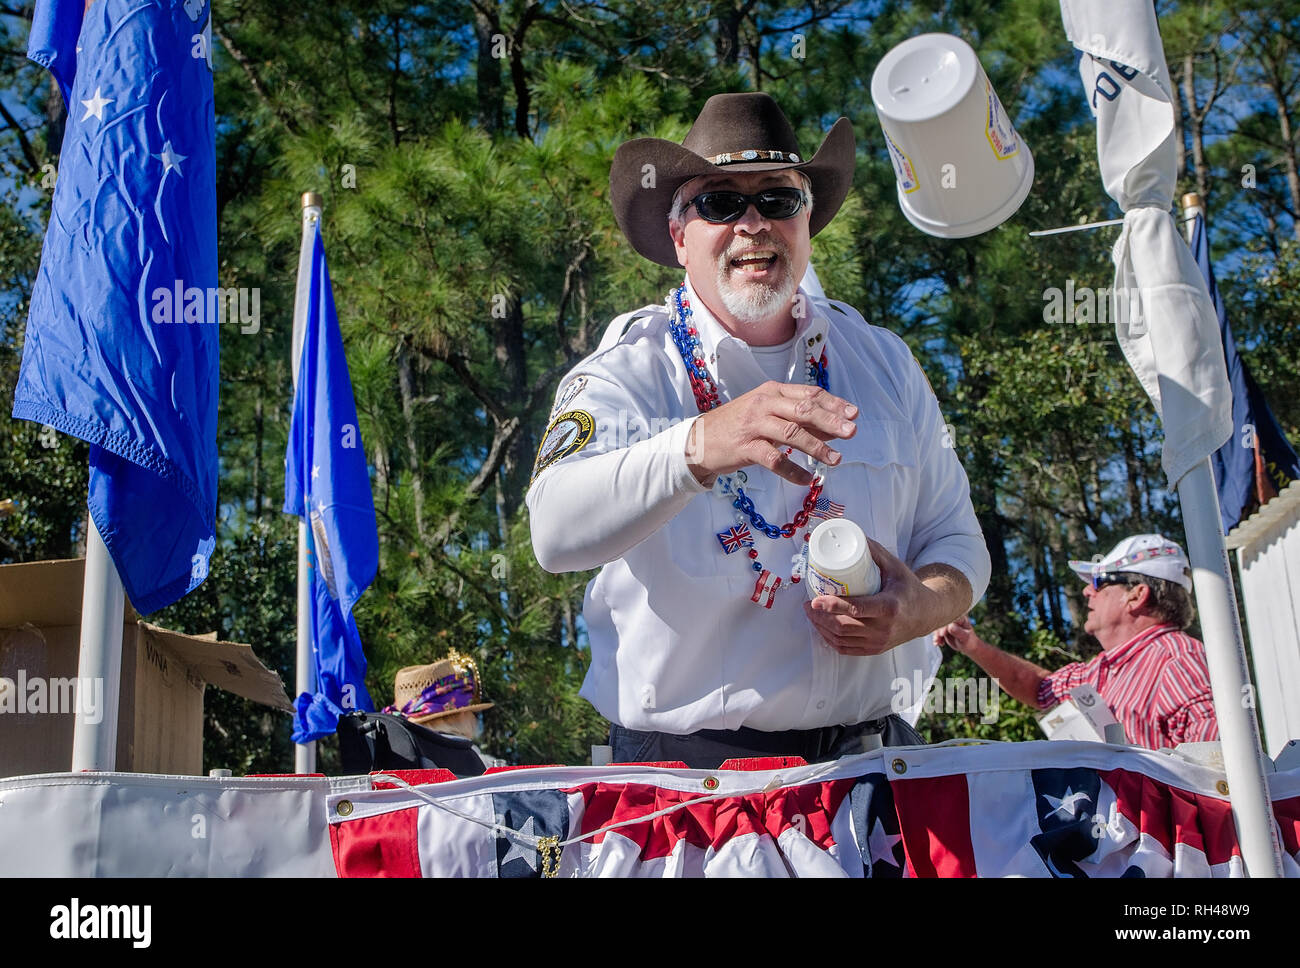 895689945c4 A member of the Dauphin Island Veterans Association throws a Mardi Gras cup  during the People s